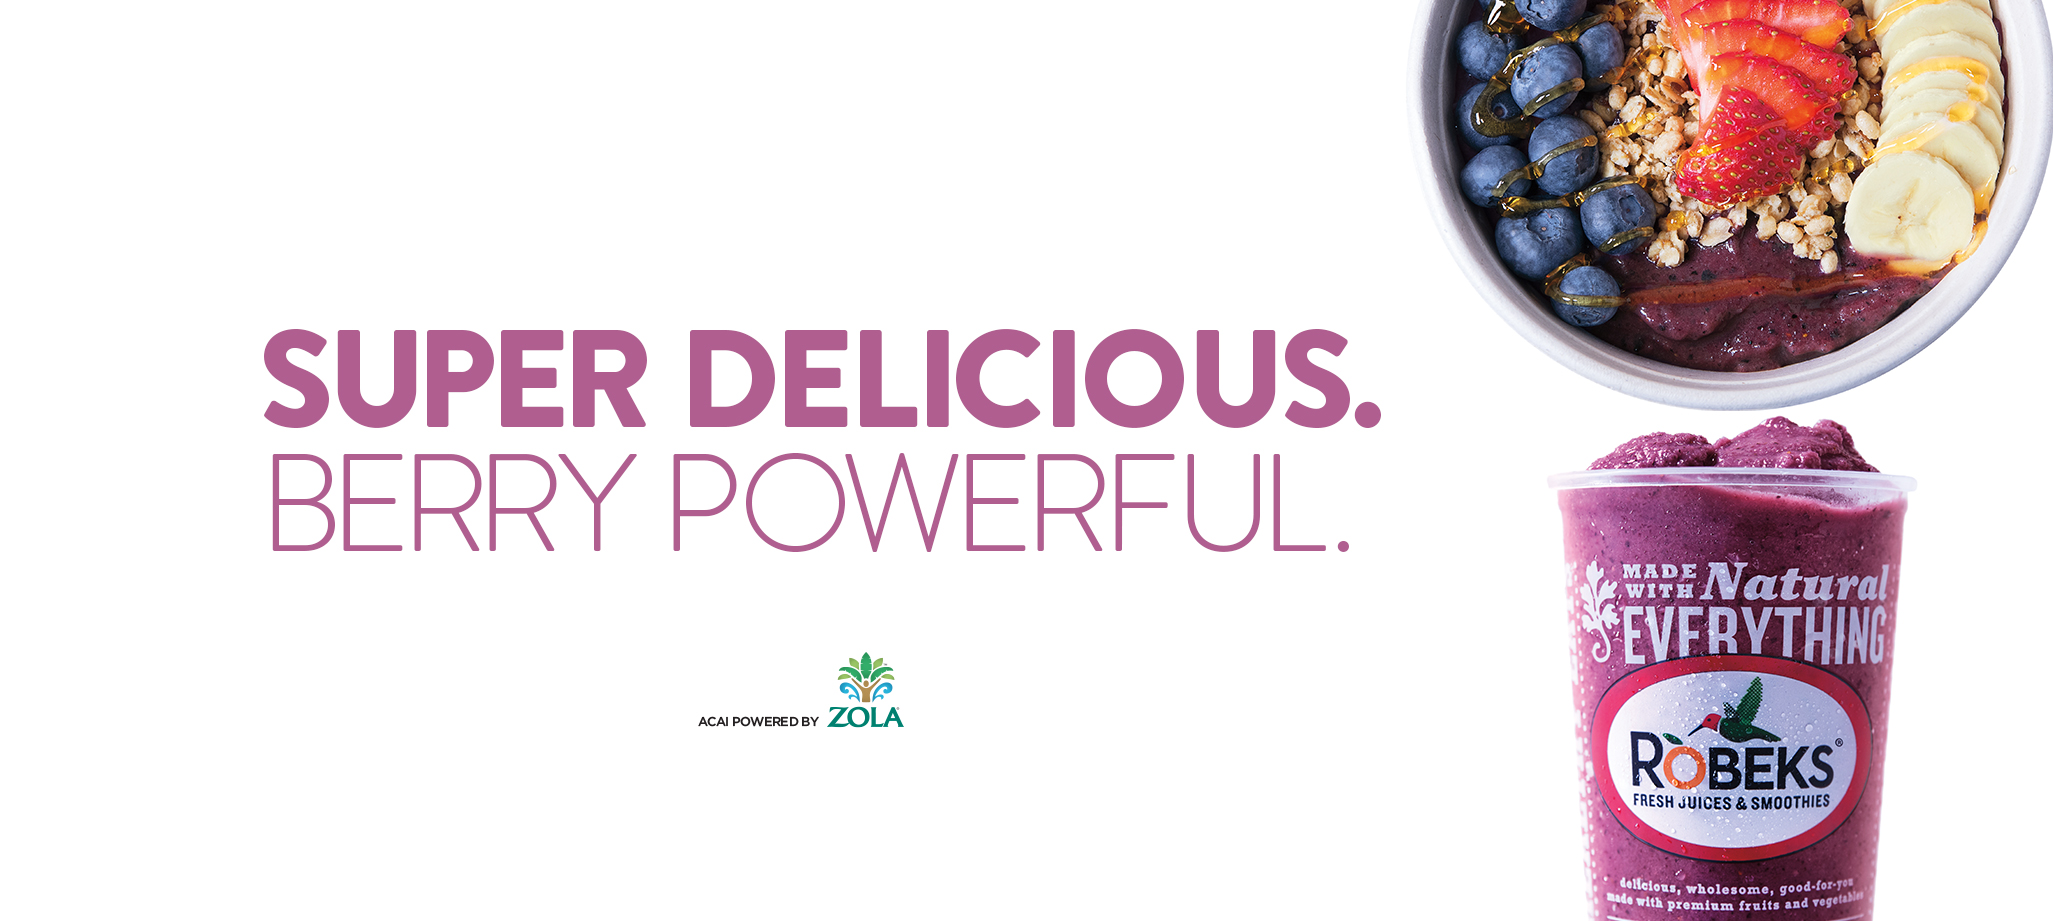 Super Delicious. Berry Powerful.